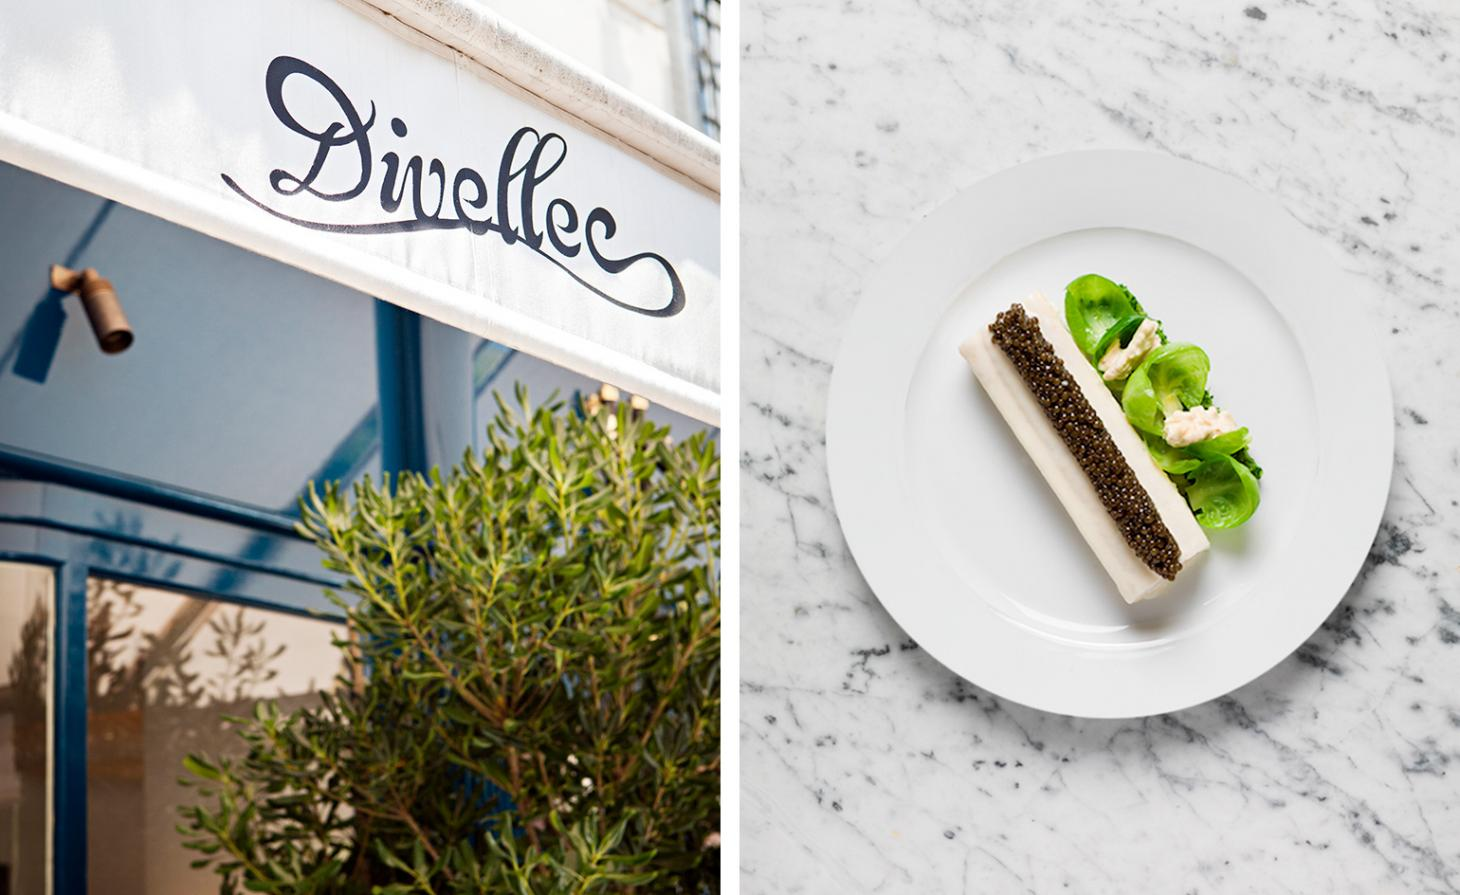 Divellec Restaurant The Pacauds Reopen Le Divellec Resteraunt In Paris